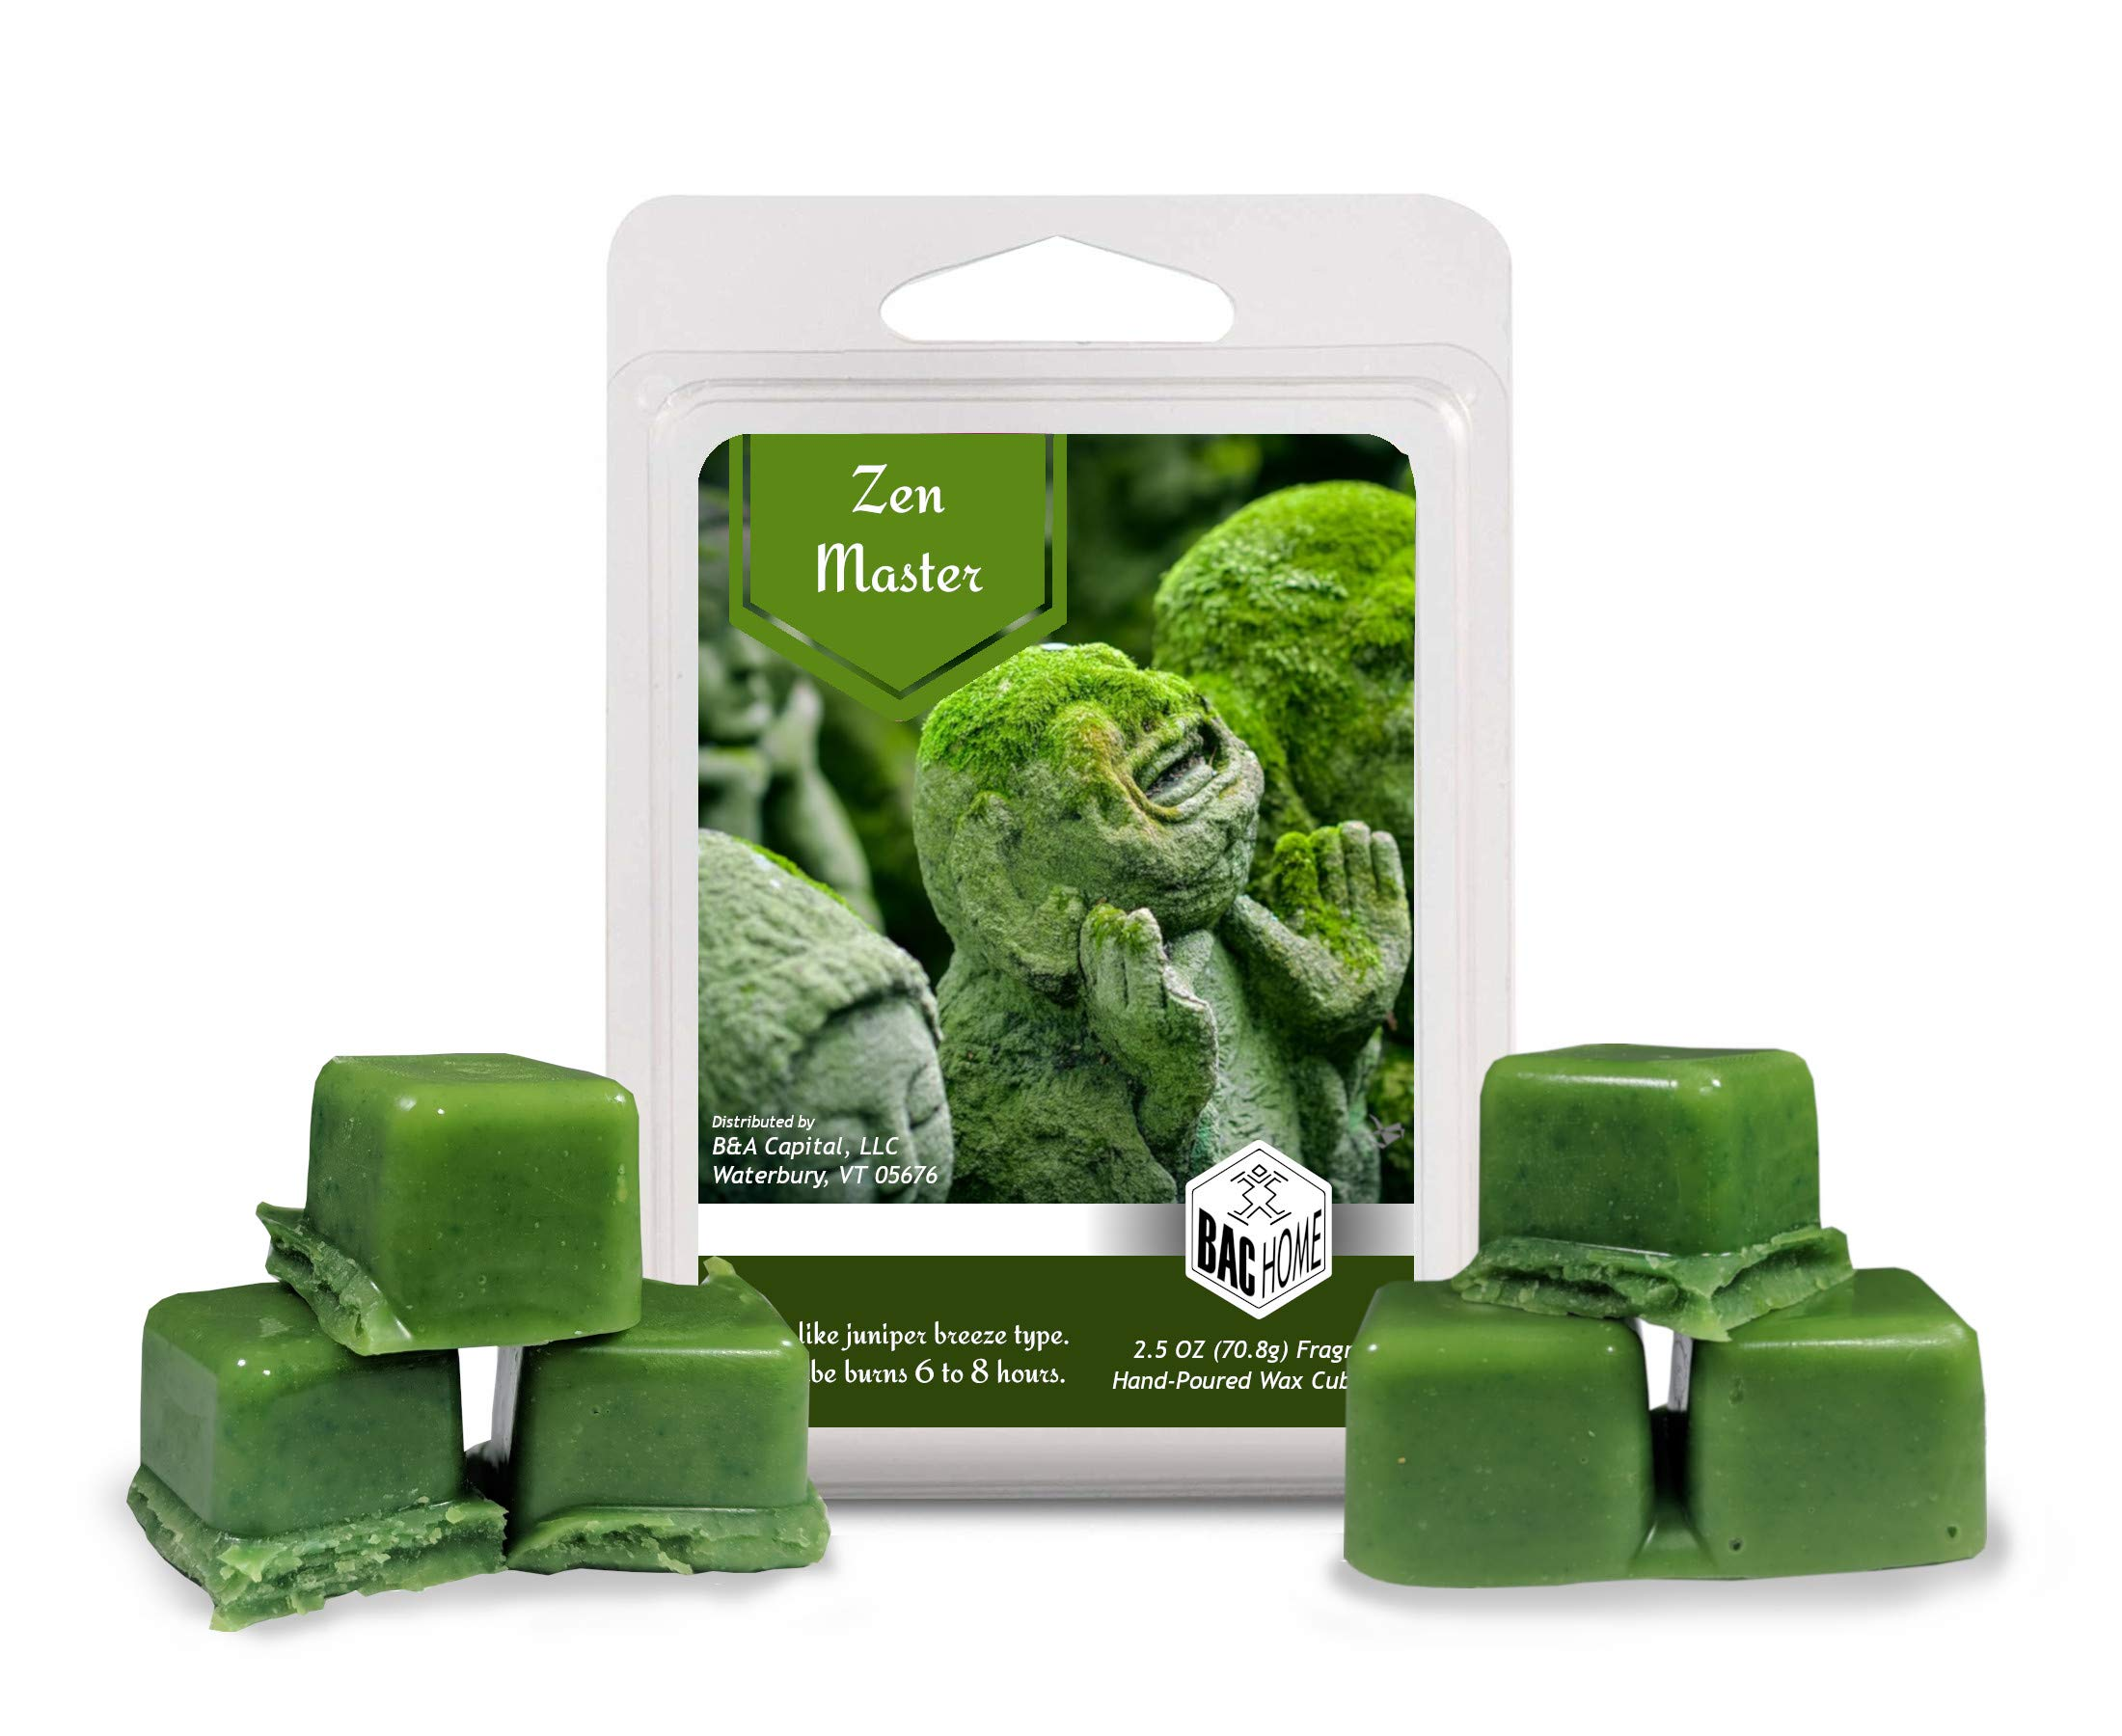 4 Pack - Ultimate Zen Collection Soy Blend Scented Wax Melts Wax Cubes, 10.0 oz, [24 Cubes] with Zen Master, Inner Peace, Breathe and Zen by BAC Home (Image #2)